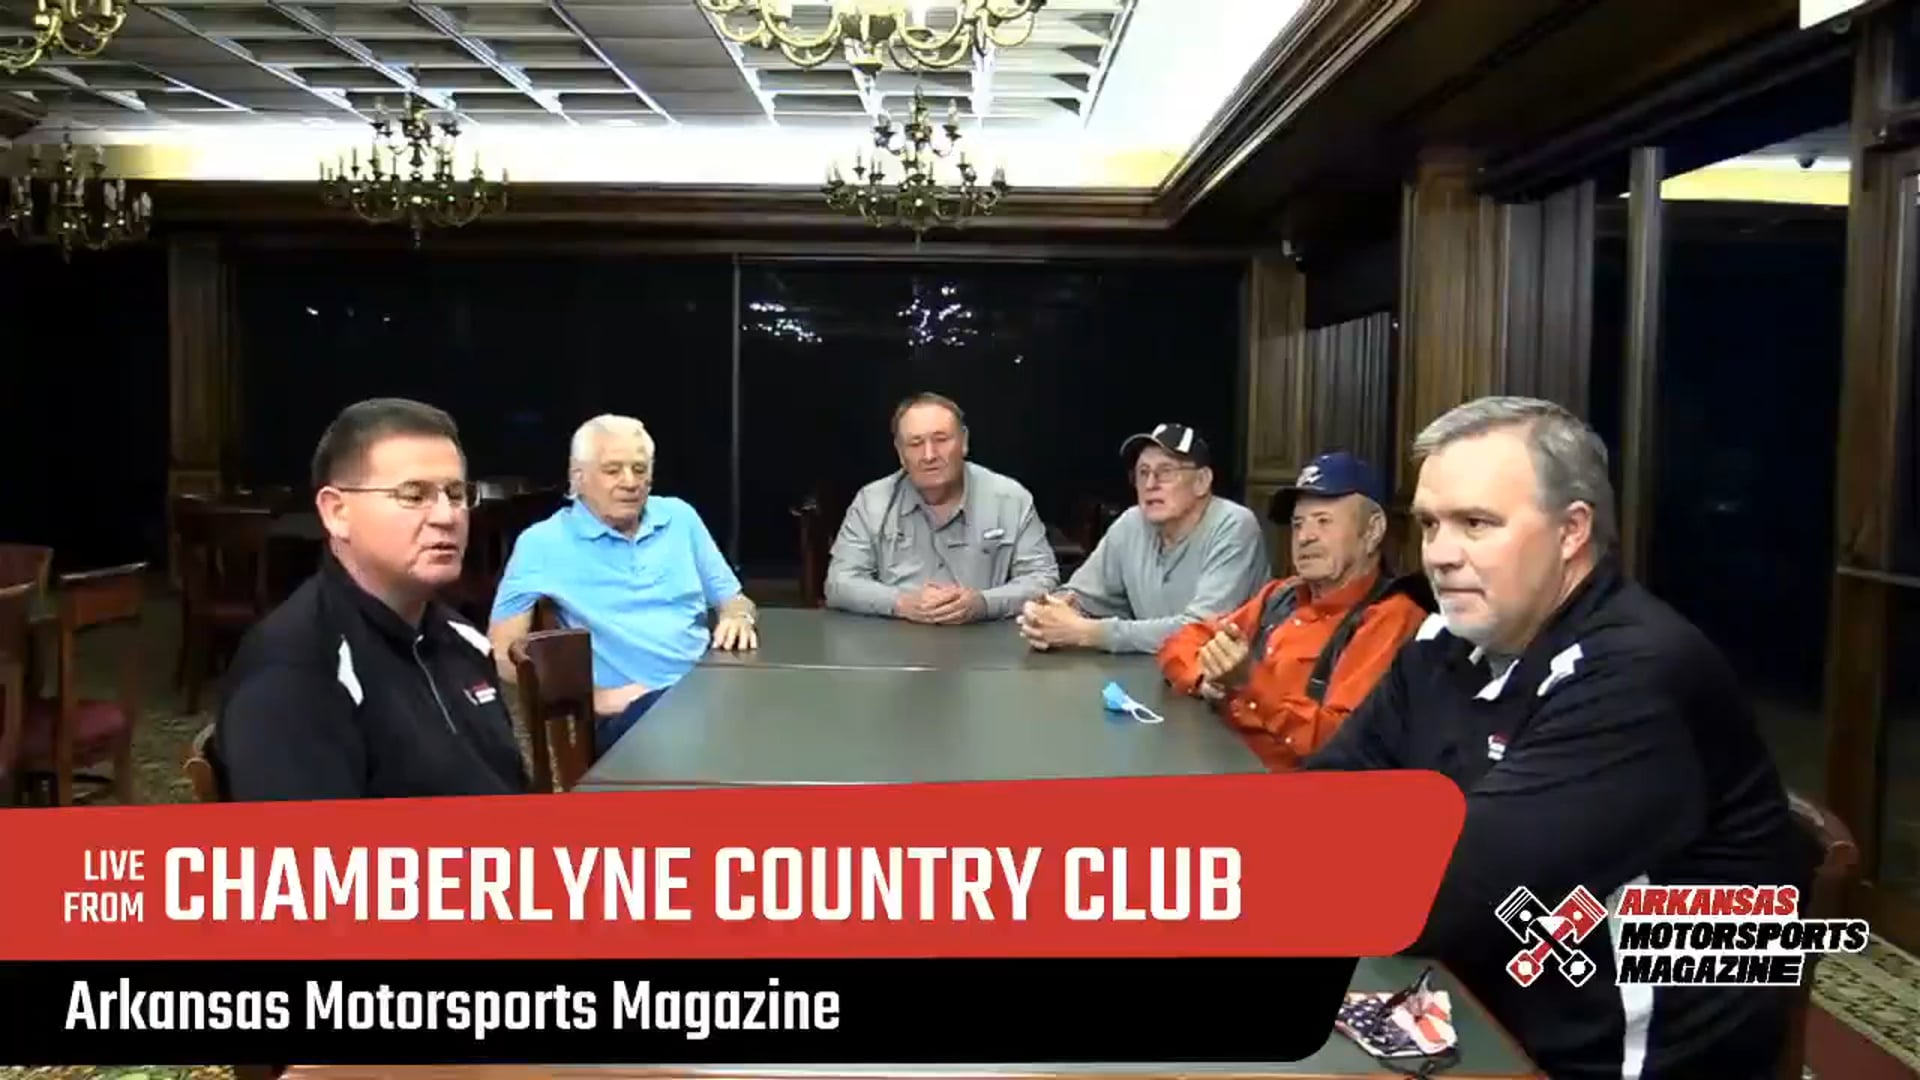 TUESDAY NIGHT TUNE UP - S1:E10 - Chamberlyne Country Club in Danville Arkansas